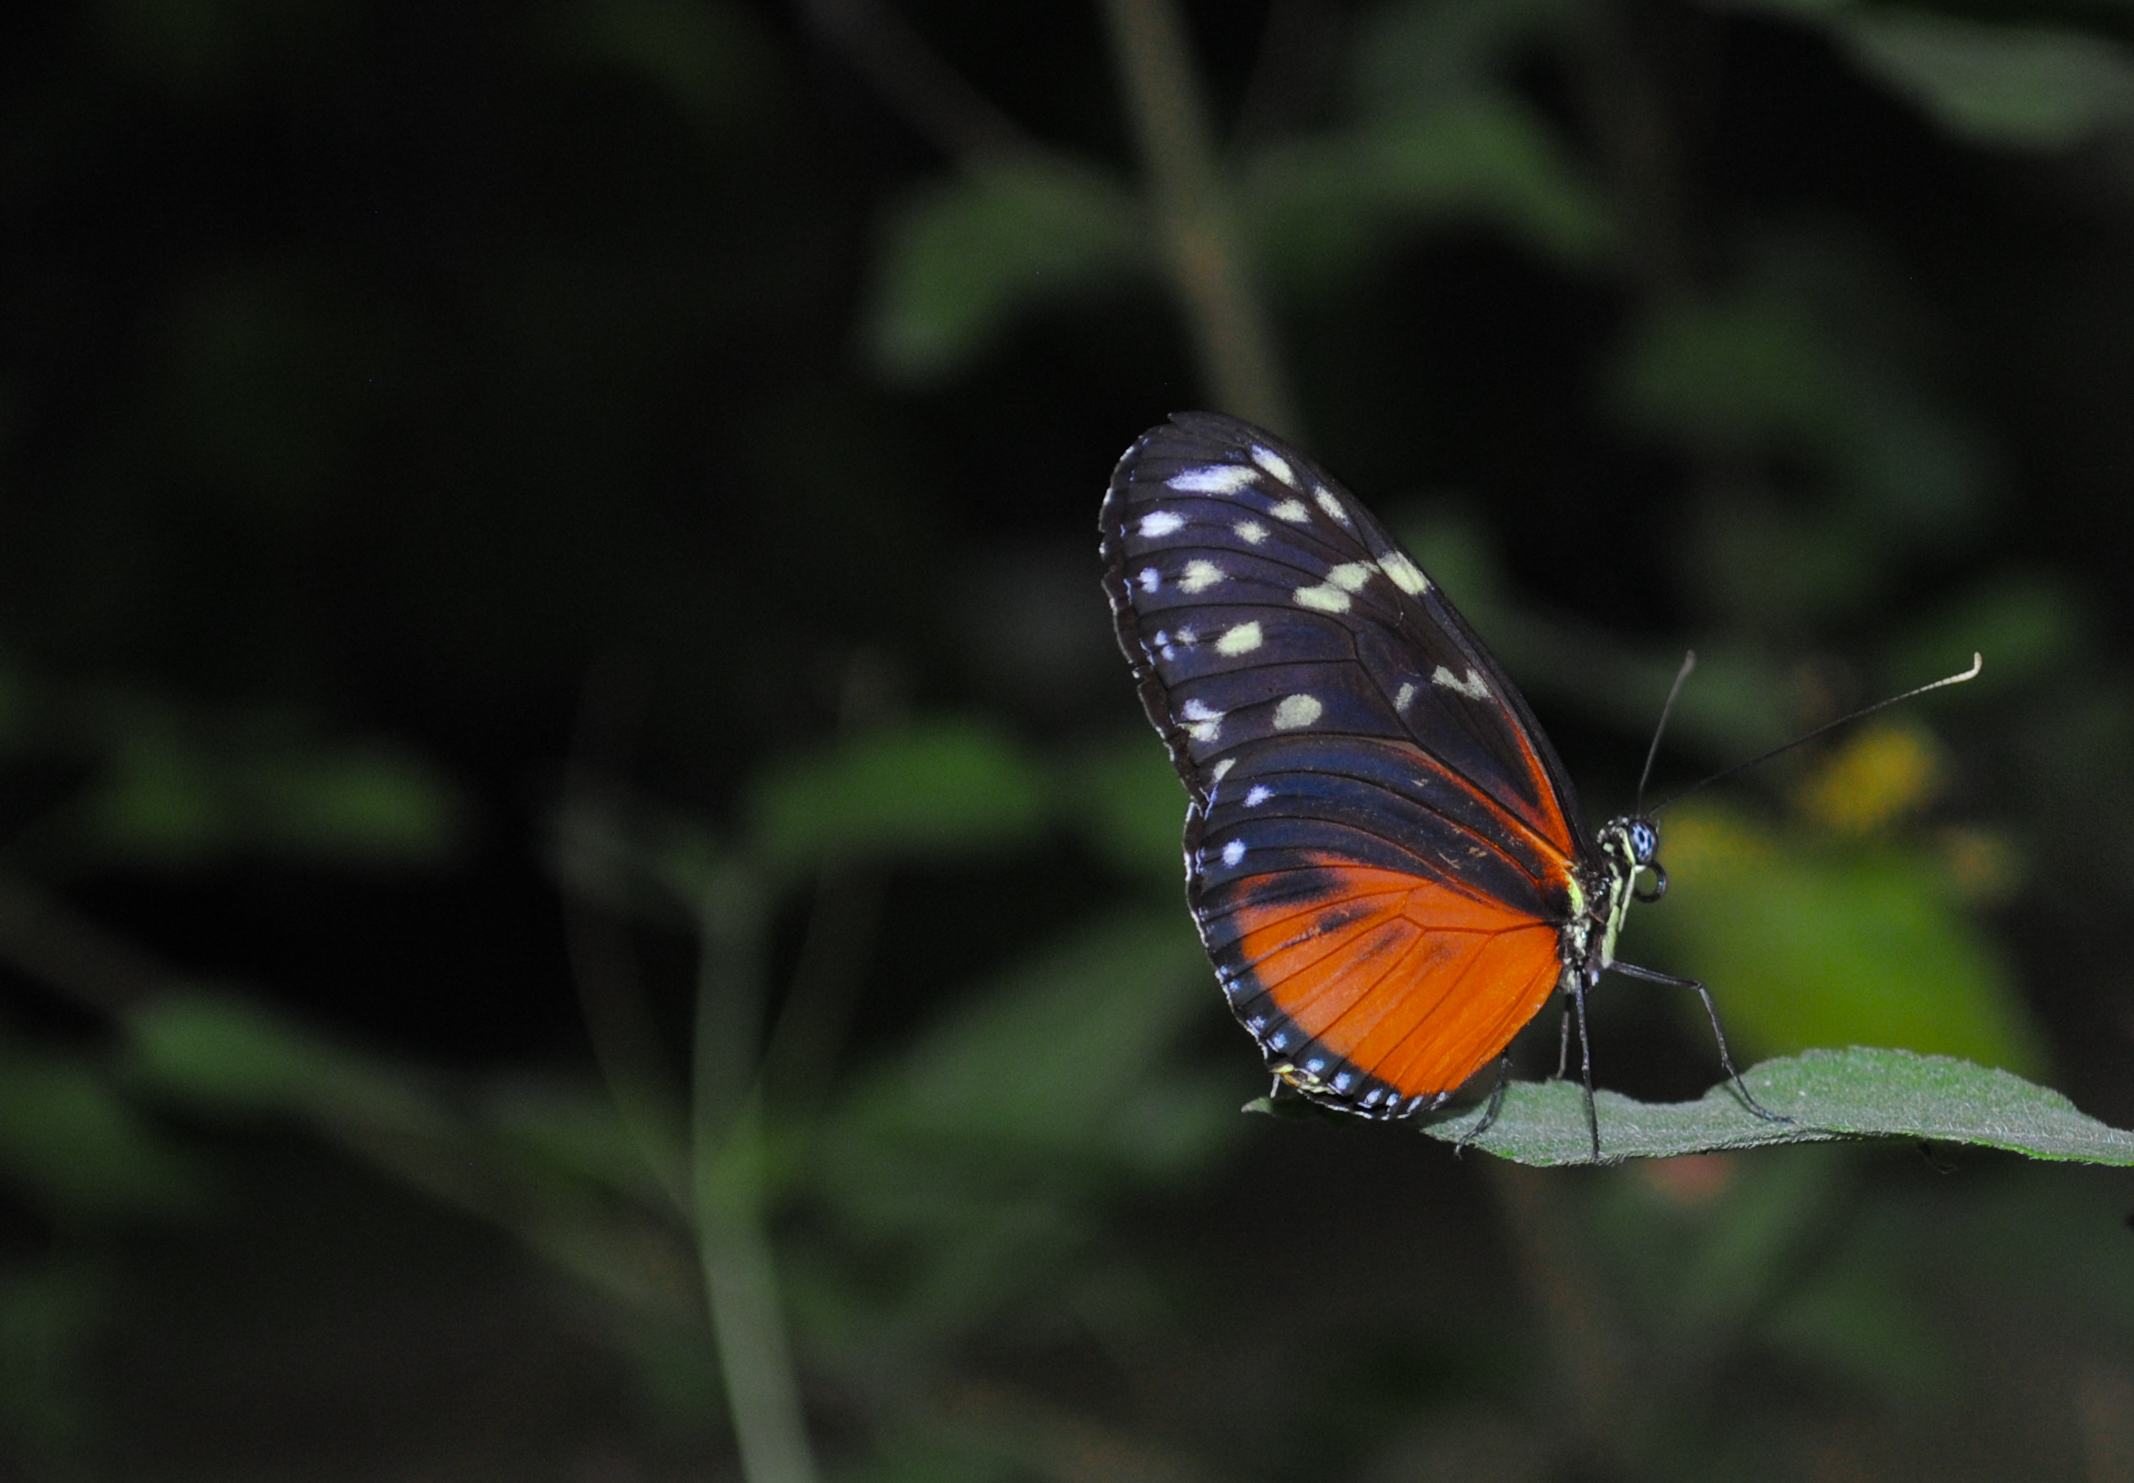 Orange Color Wallpaper Hd Black And Orange Butterfly Photo 183 Free Stock Photo